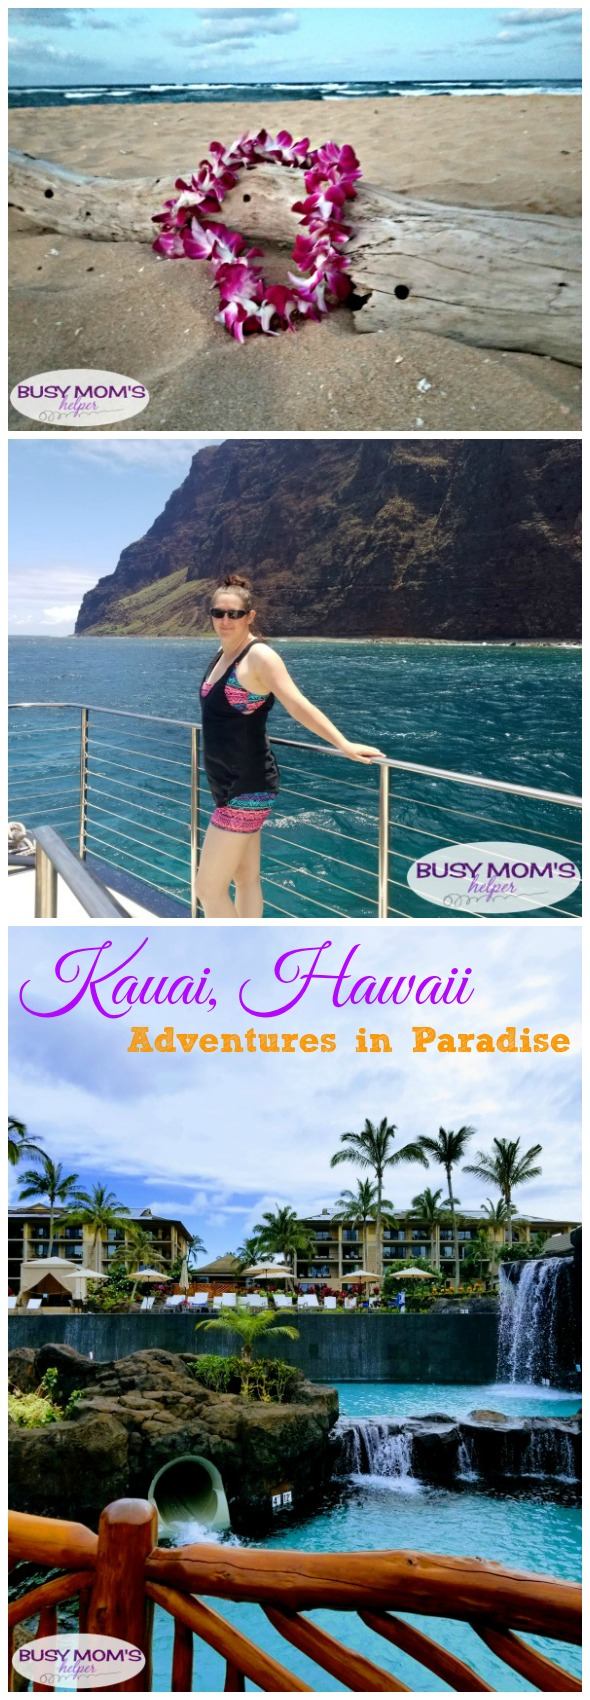 Kauai: Adventures in Paradise #sponsored #KauaiDiscovery